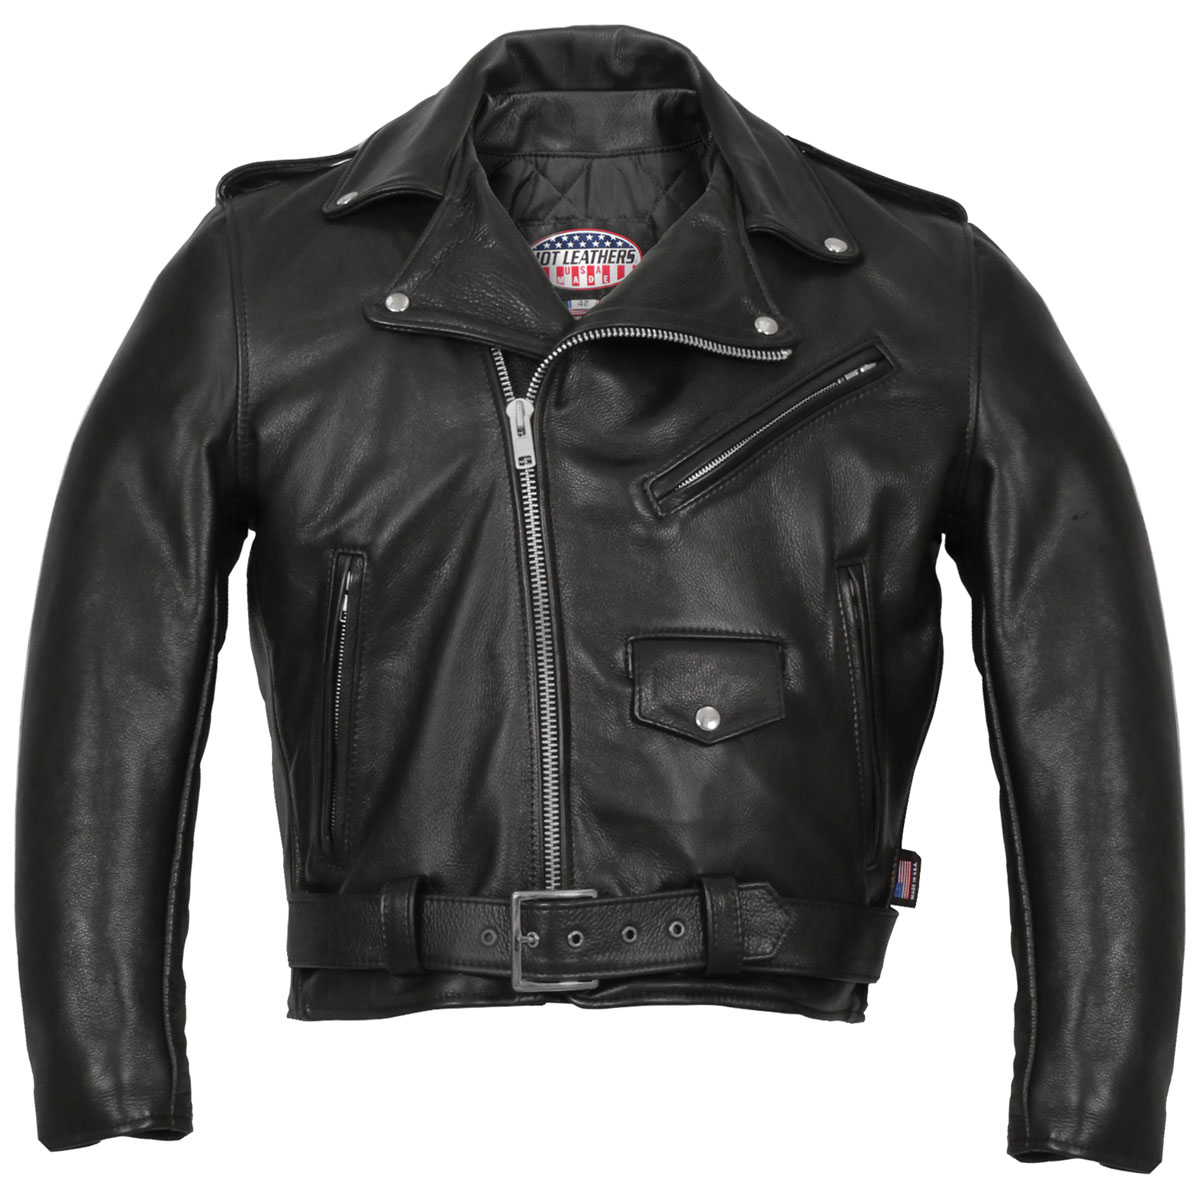 Hot Leathers Men's USA Made Classic Black Leather Jacket